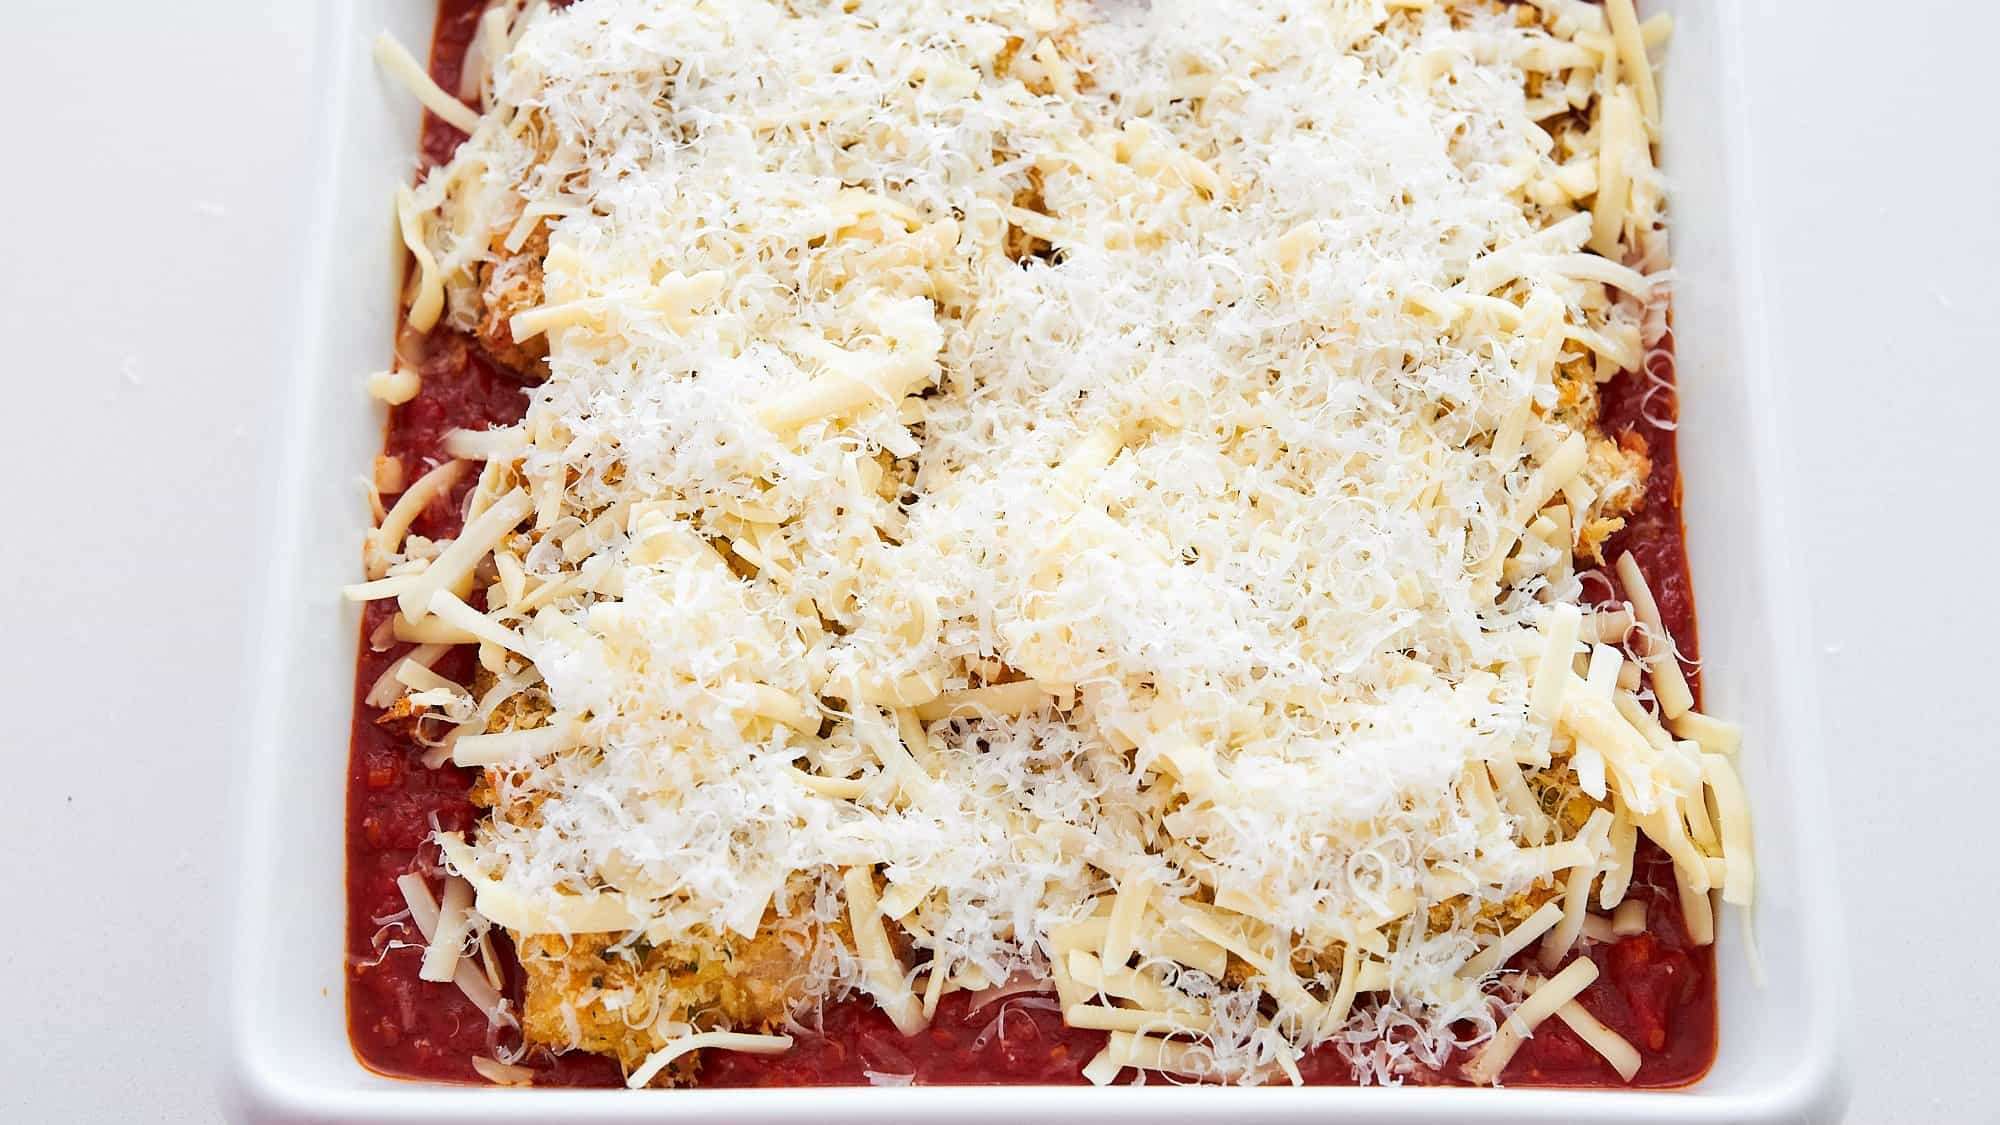 Cover the chicken parmesan with mozzarella and parmesan and bake.